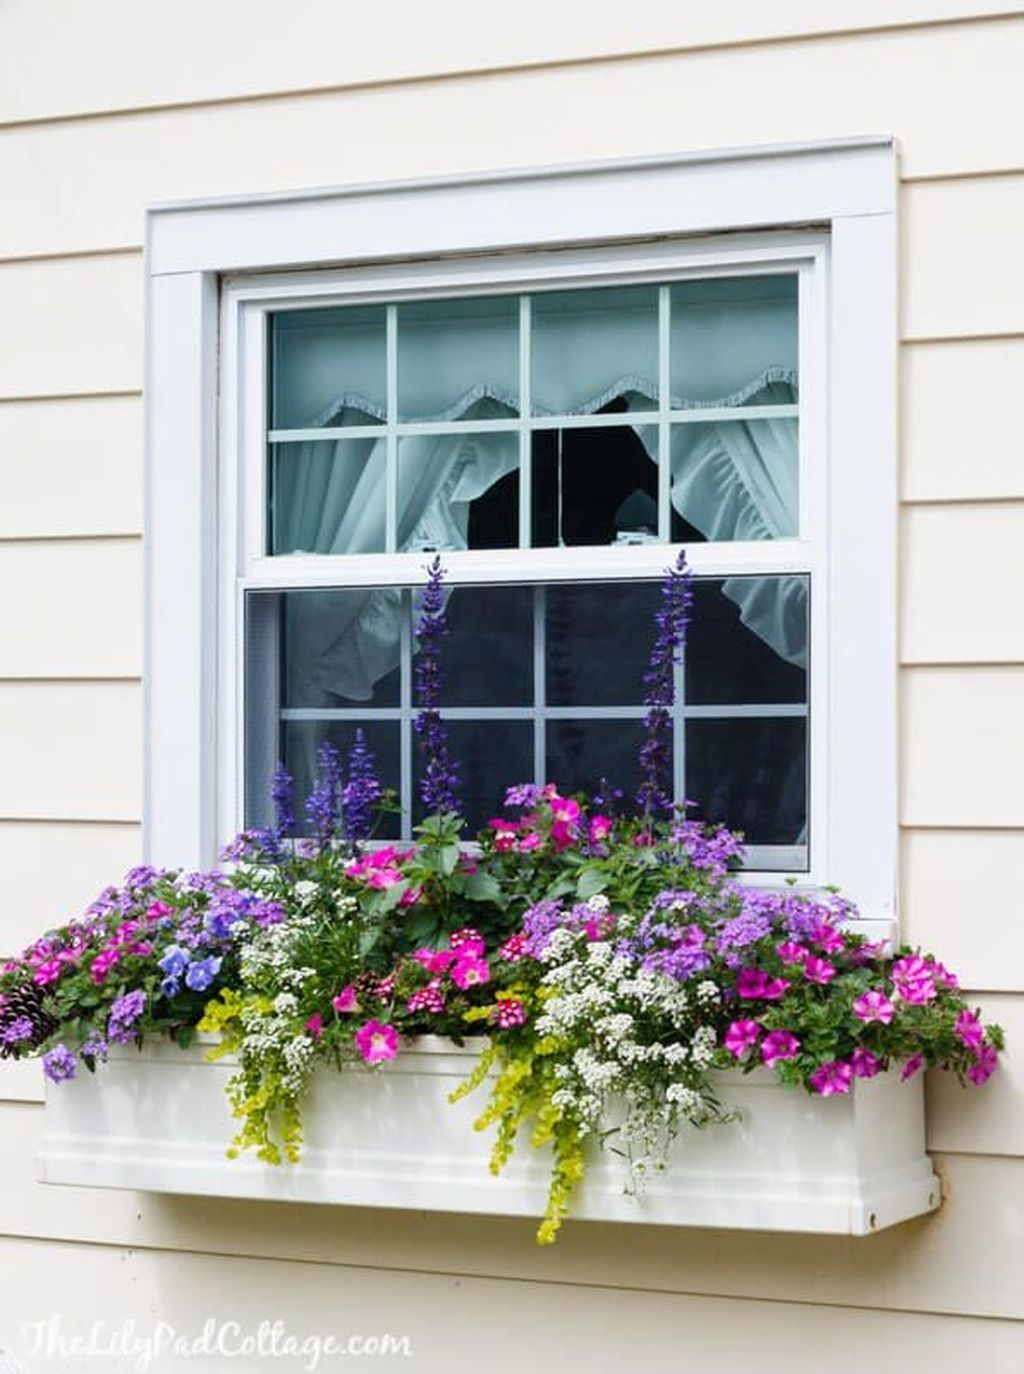 32 outstanding diy window box planters design ideas to try